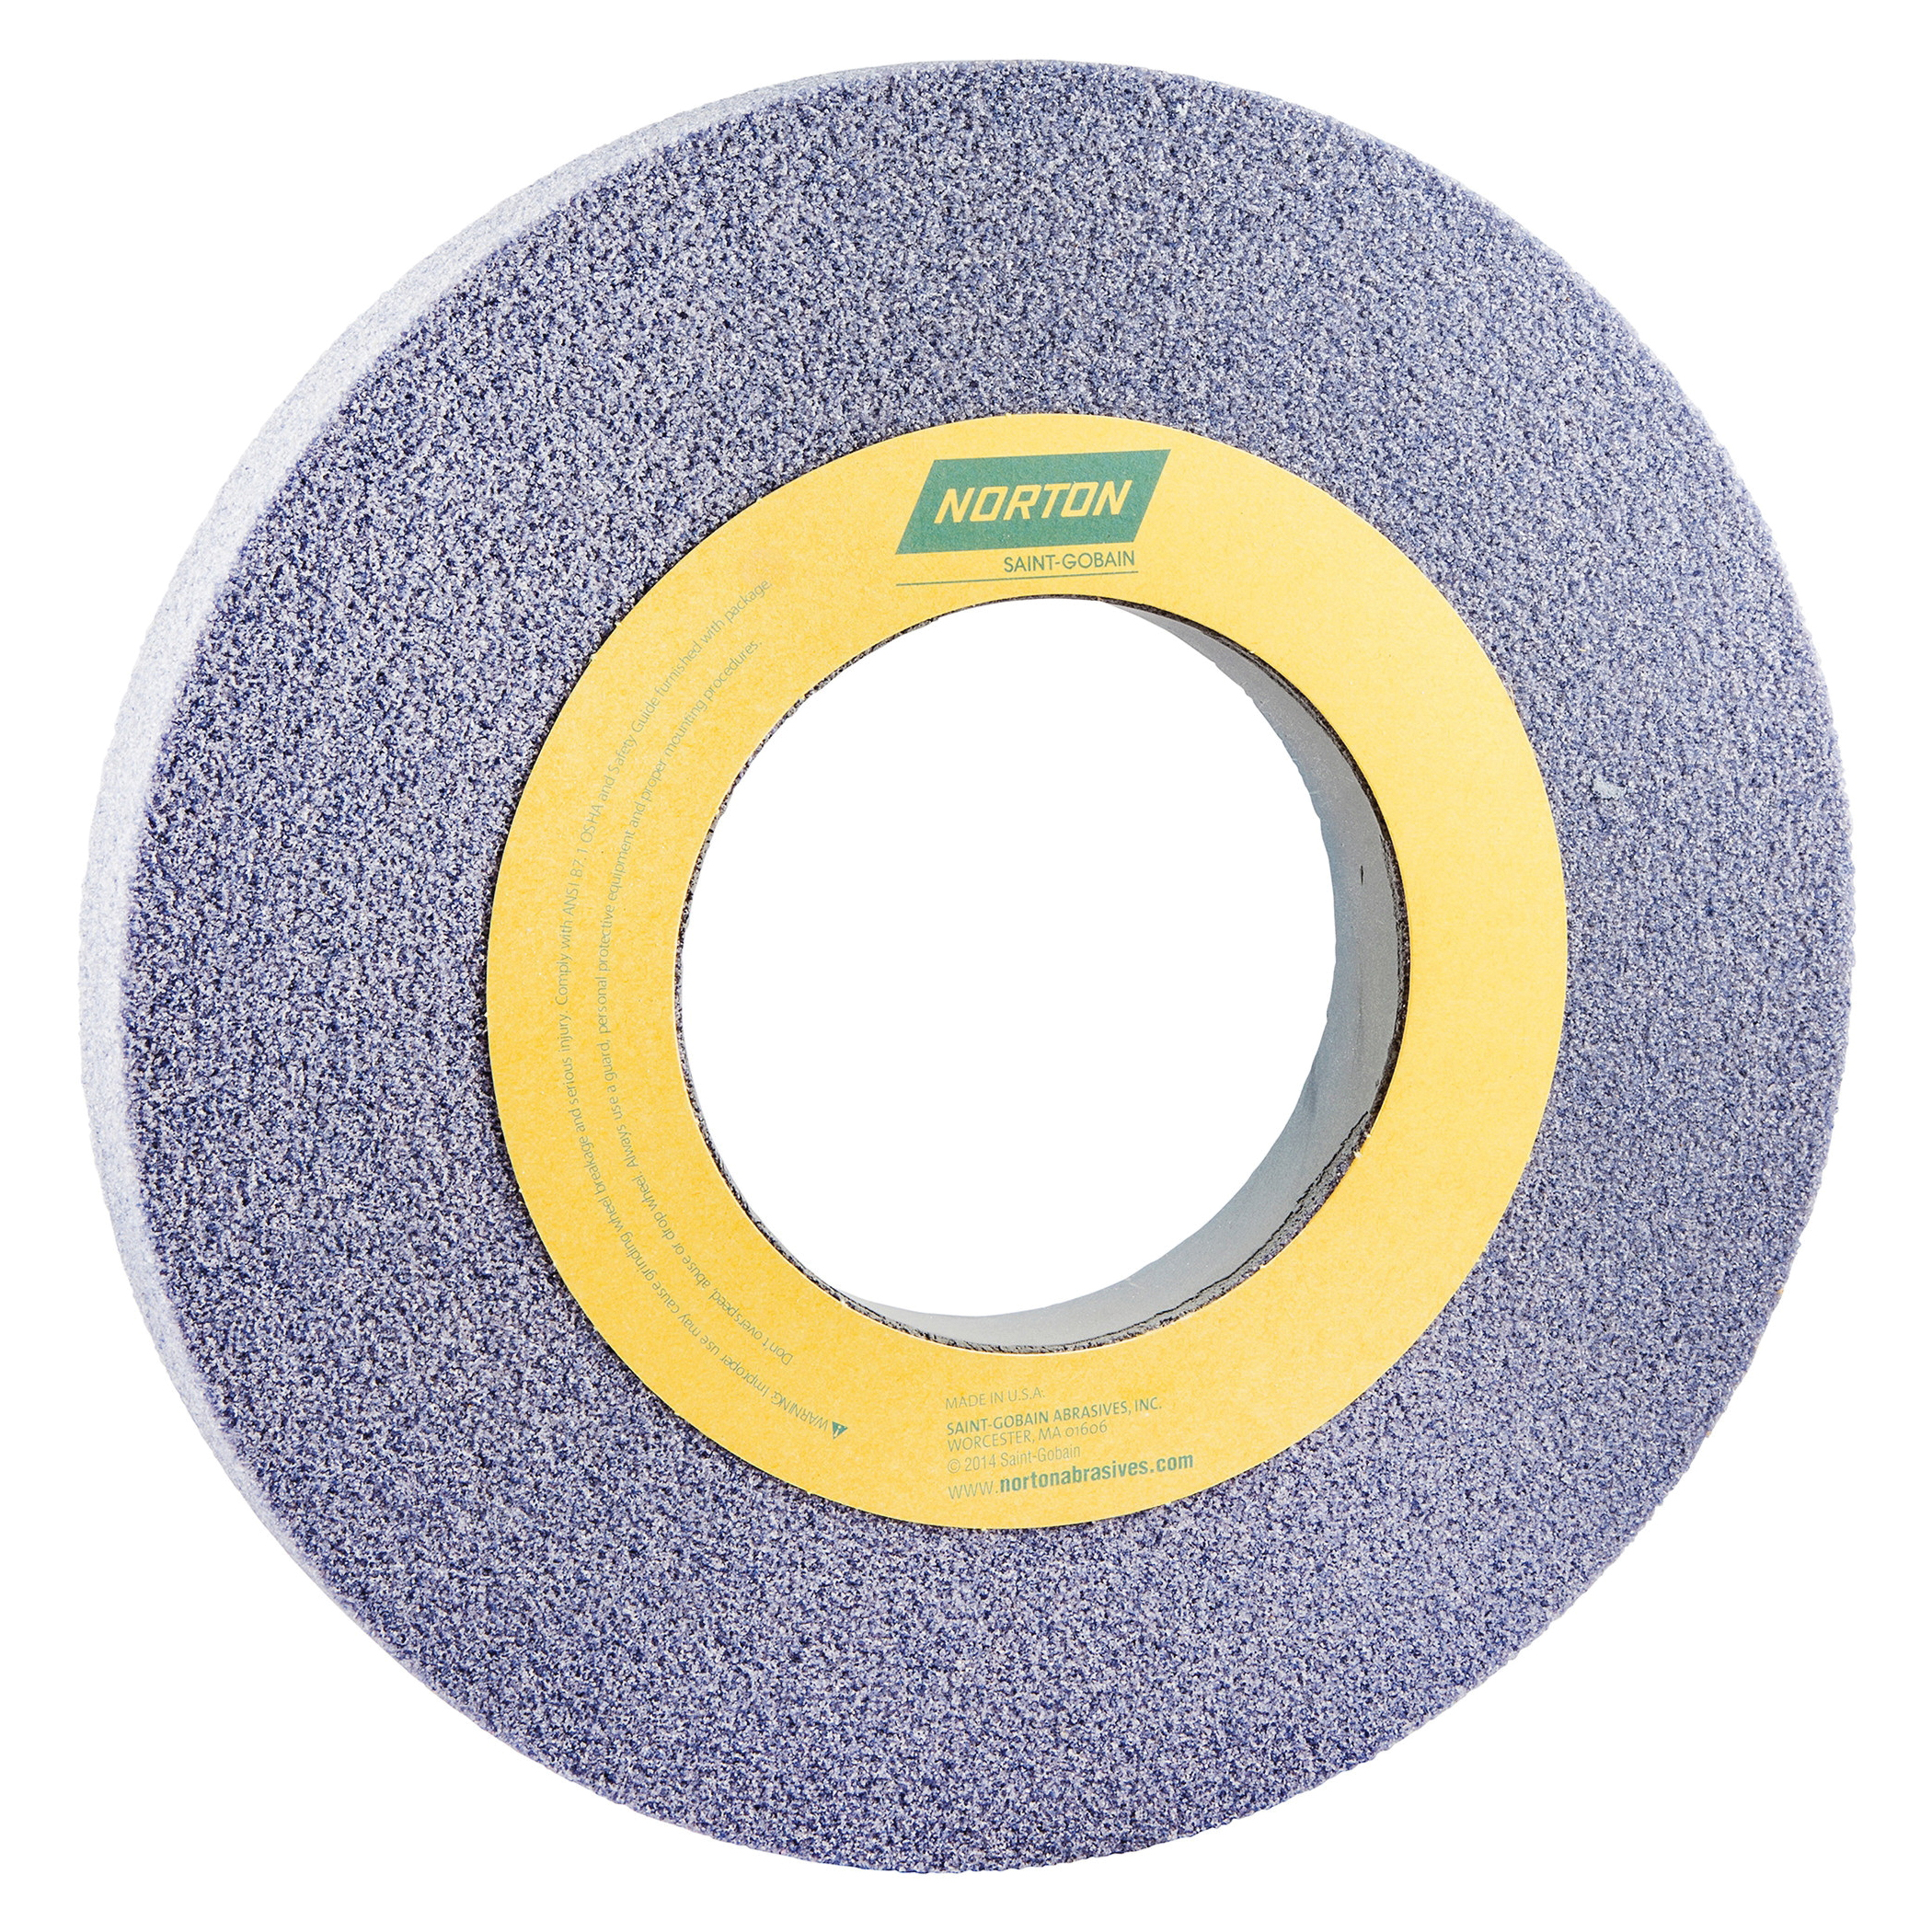 Norton® 66253262563 32A Straight Toolroom Wheel, 12 in Dia x 1 in THK, 5 in Center Hole, 46 Grit, Aluminum Oxide Abrasive